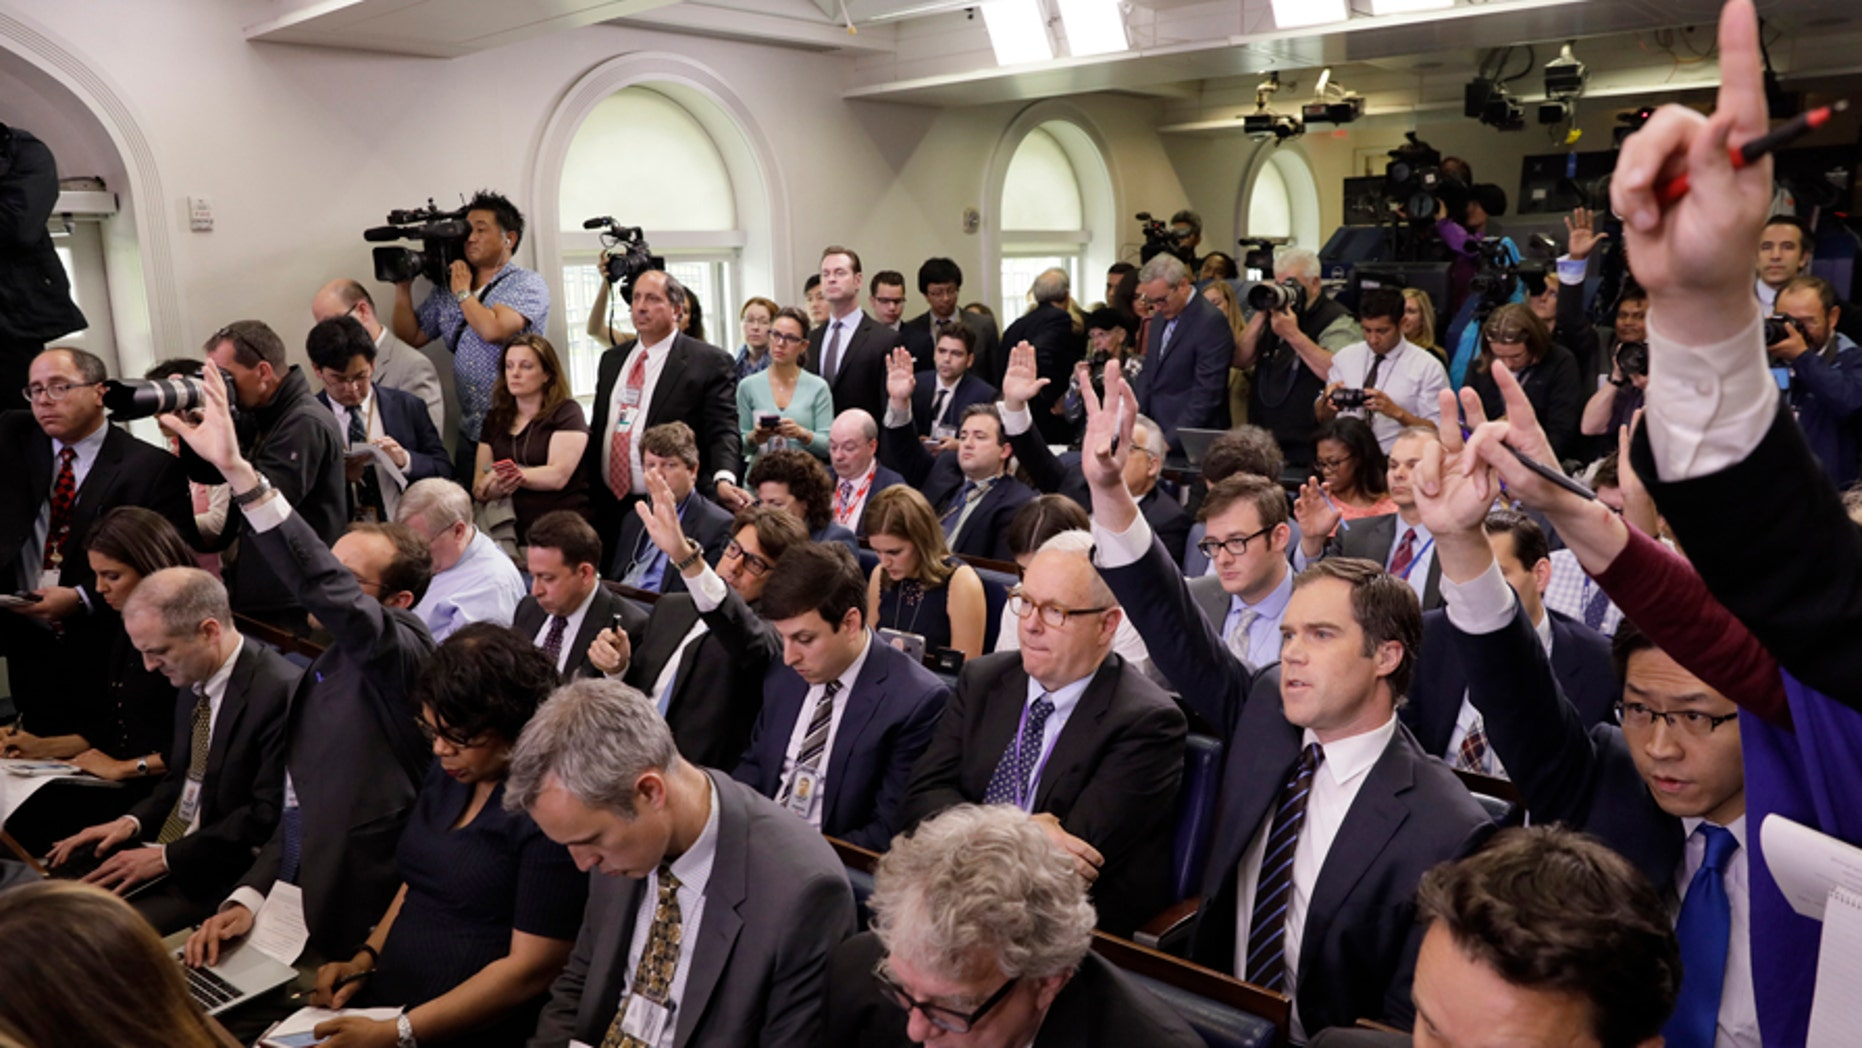 Reporters ask questions in the White House briefing room in Washington, April 26, 2017.